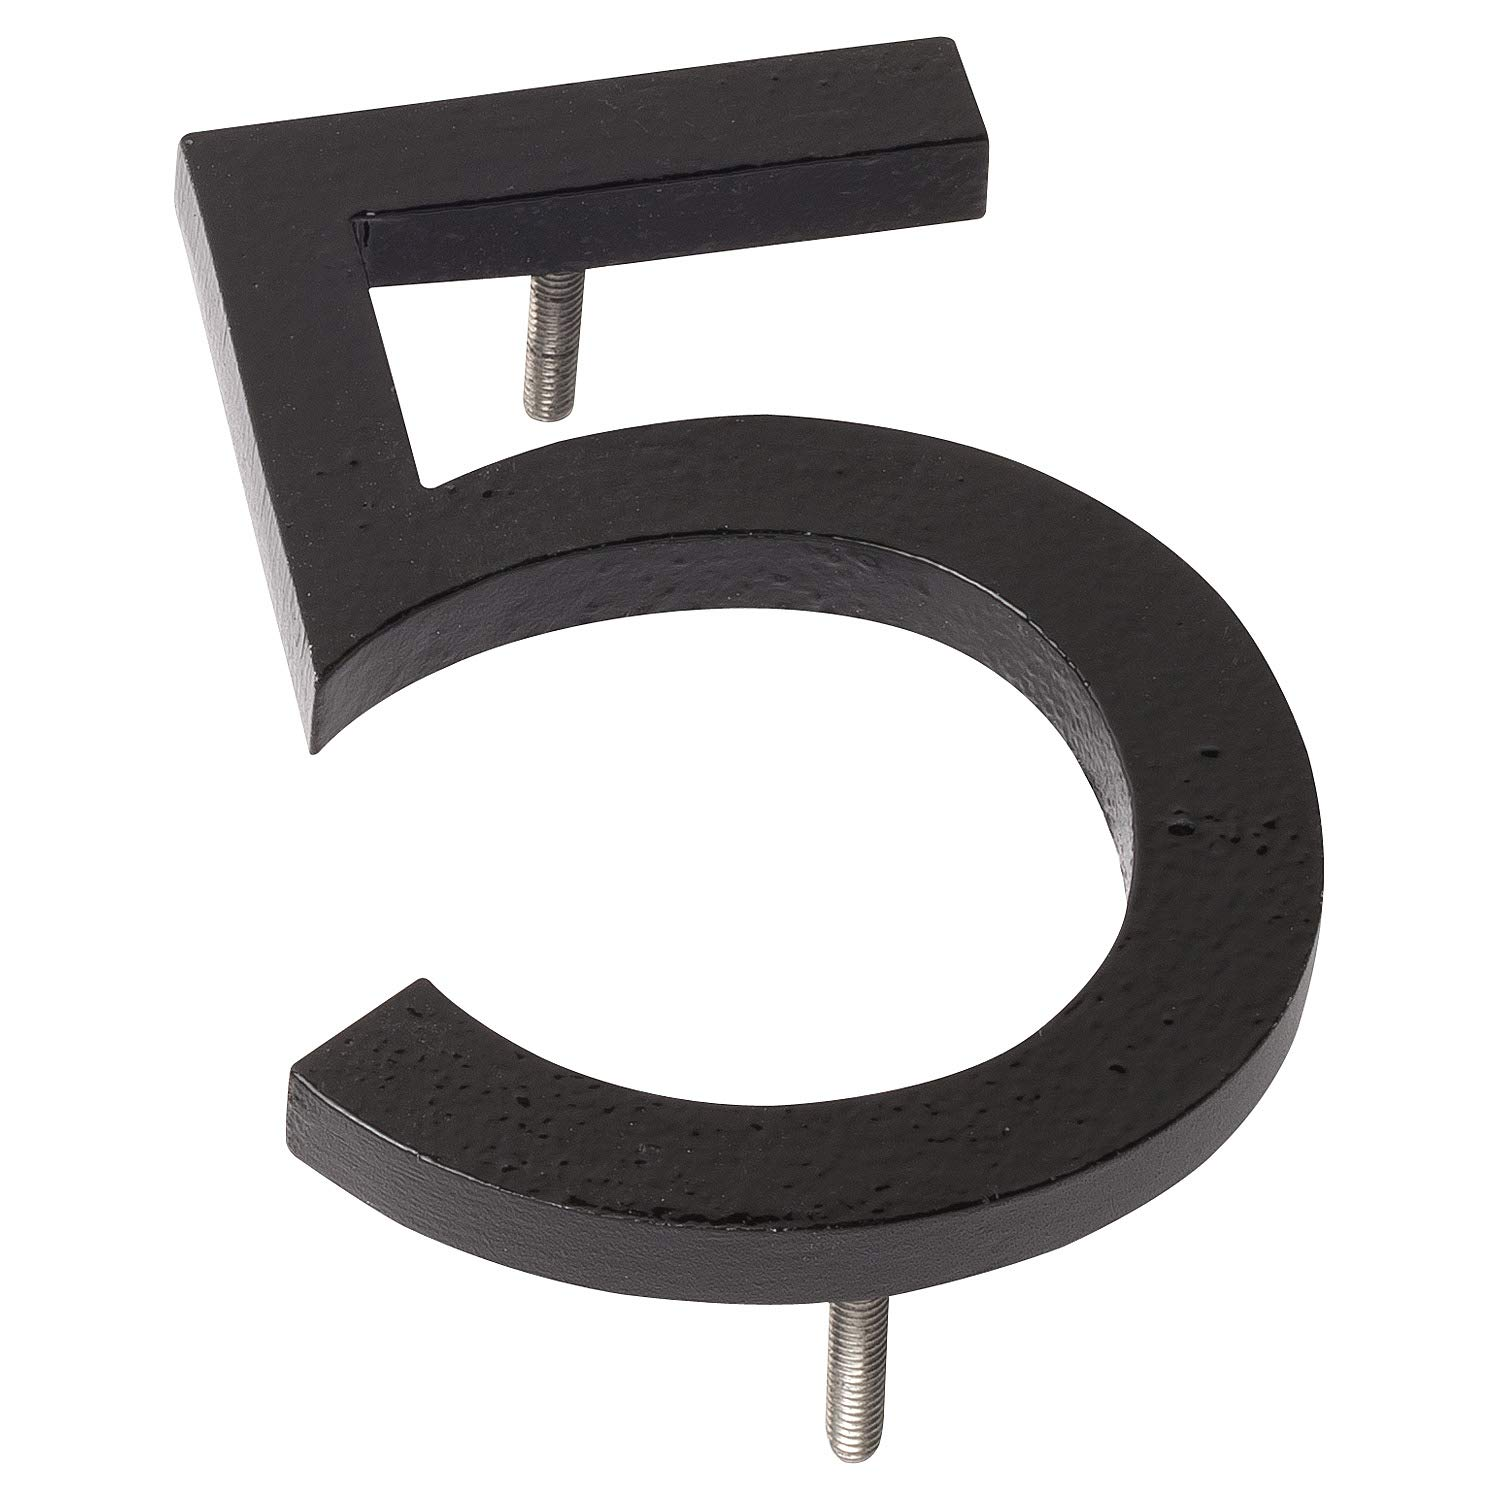 Montague Metal Products MHN-06-5-F-BK1 Floating House Number, 6'' x 4.19'' x 0.31'' Black by Montague Metal Products (Image #1)